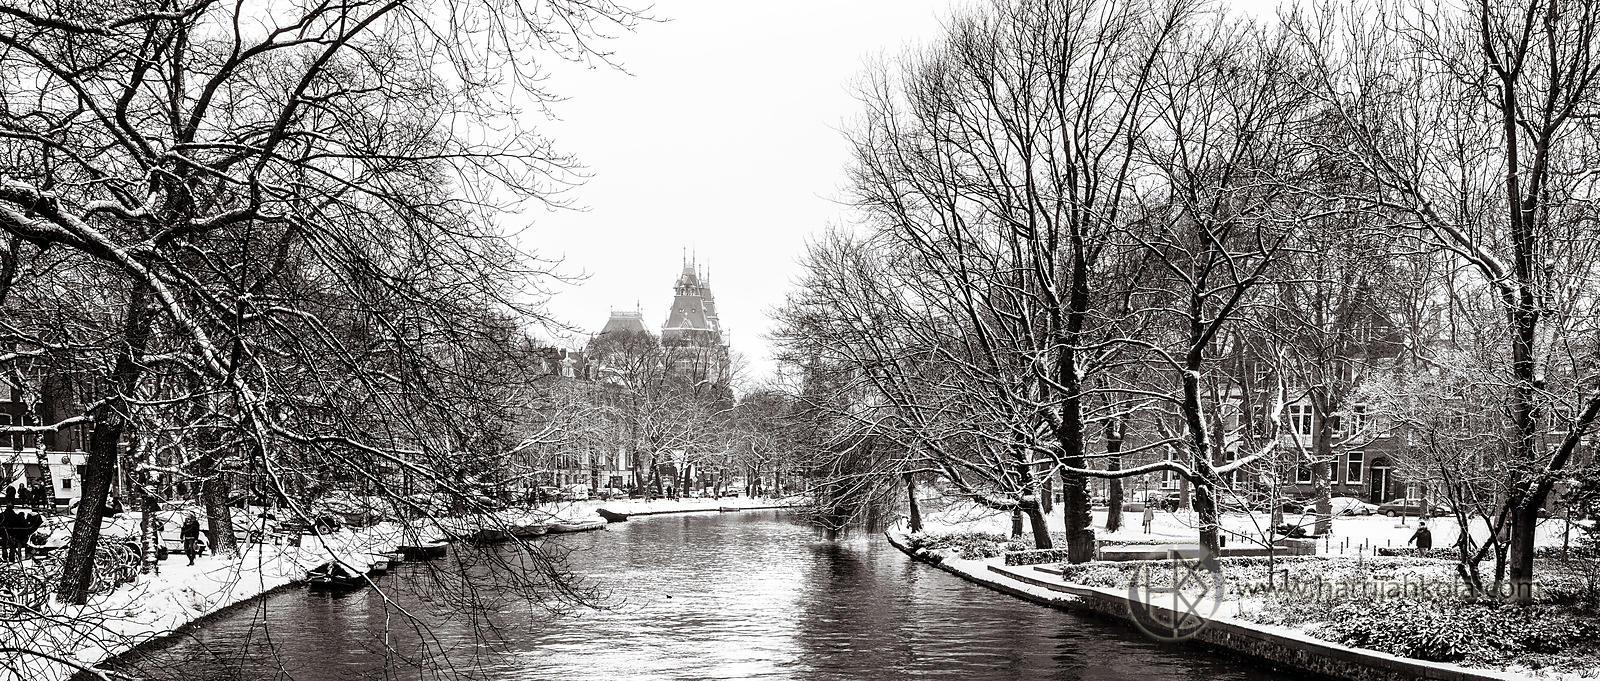 Netherlands - Amsterdam (Singelgracht and Rijksmuseum in Winter)